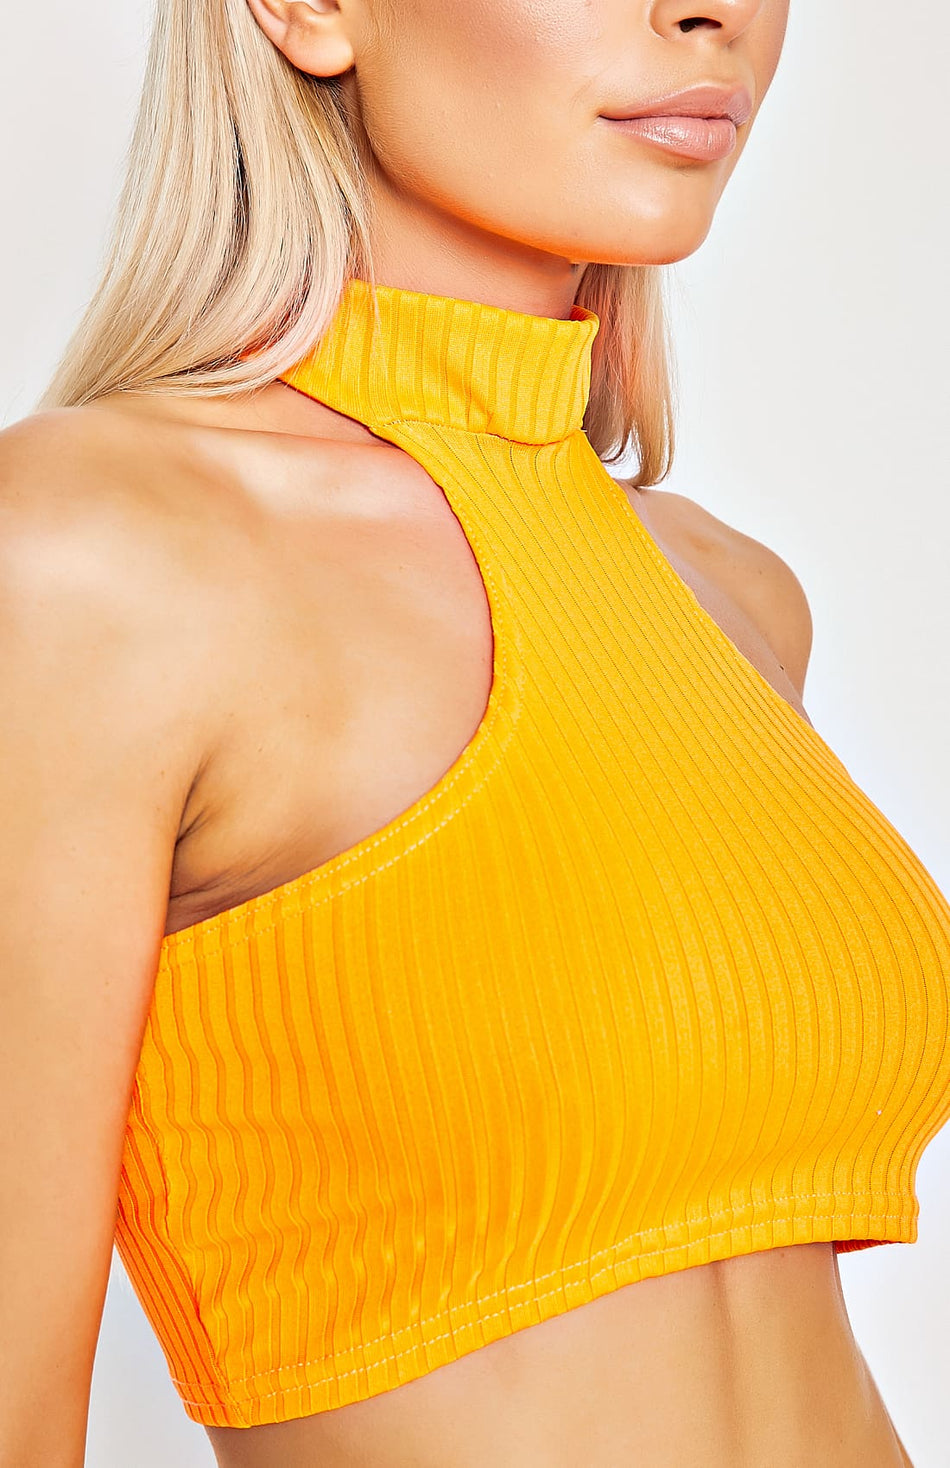 Neon Orange Rib Knit Cut Away vorne bauchfreies Oberteil